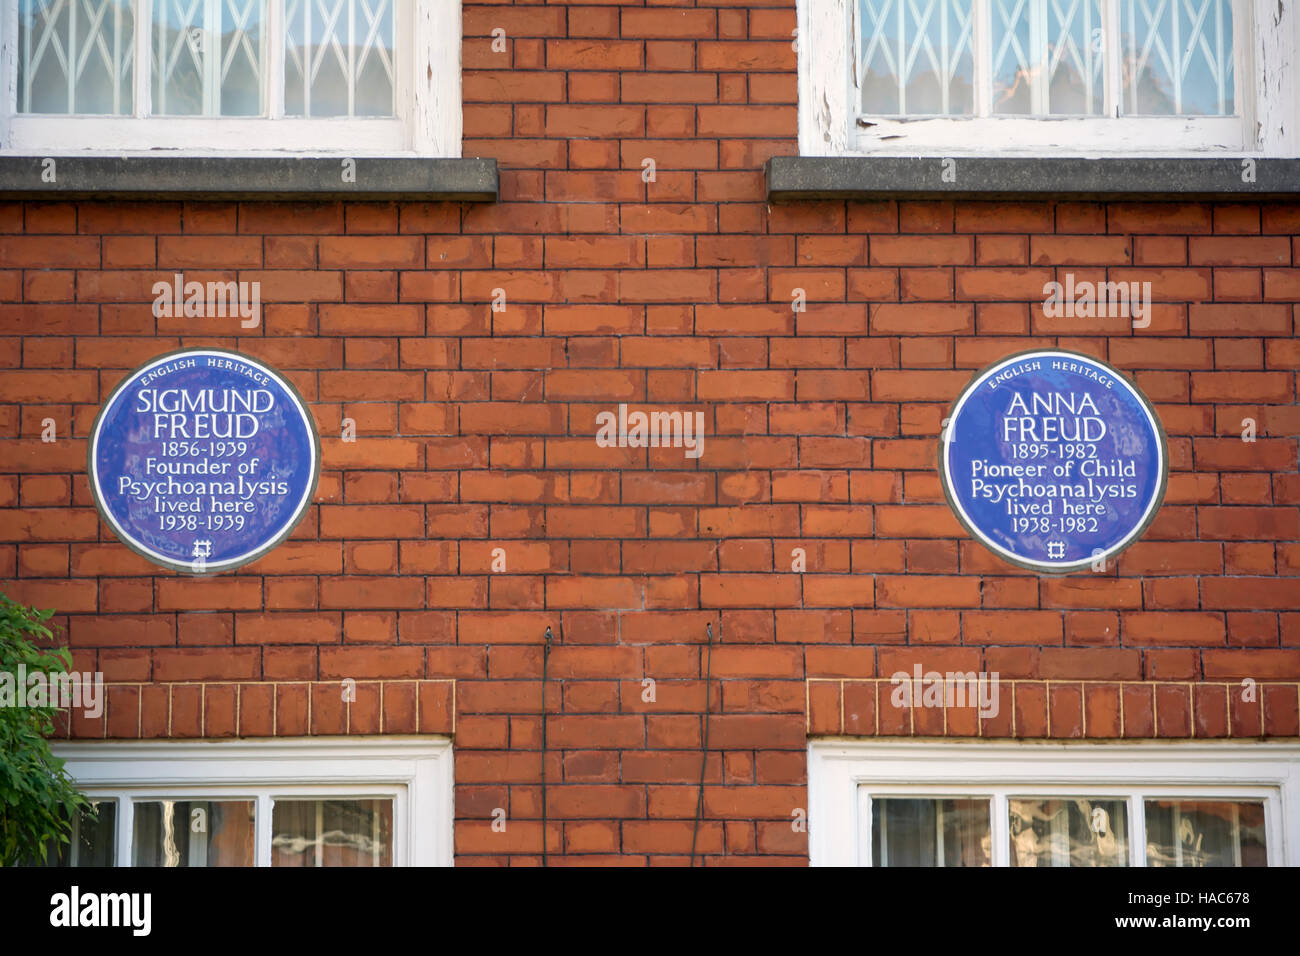 english heritage blue plaques marking the home of sigmund freud and anna freud hampstead, london, england - Stock Image